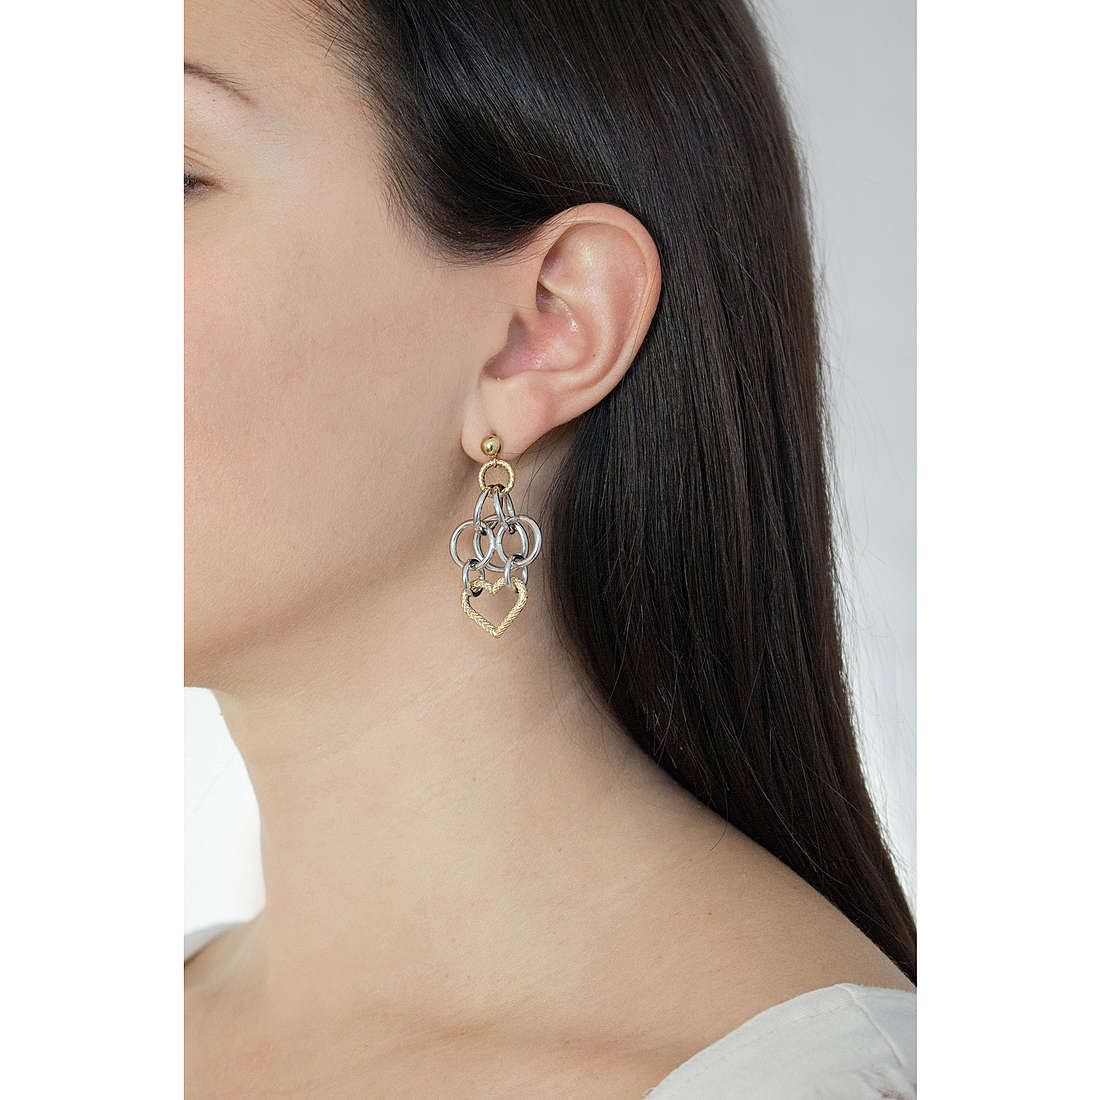 Morellato boucles d'oreille Essenza femme SAGX06 photo wearing